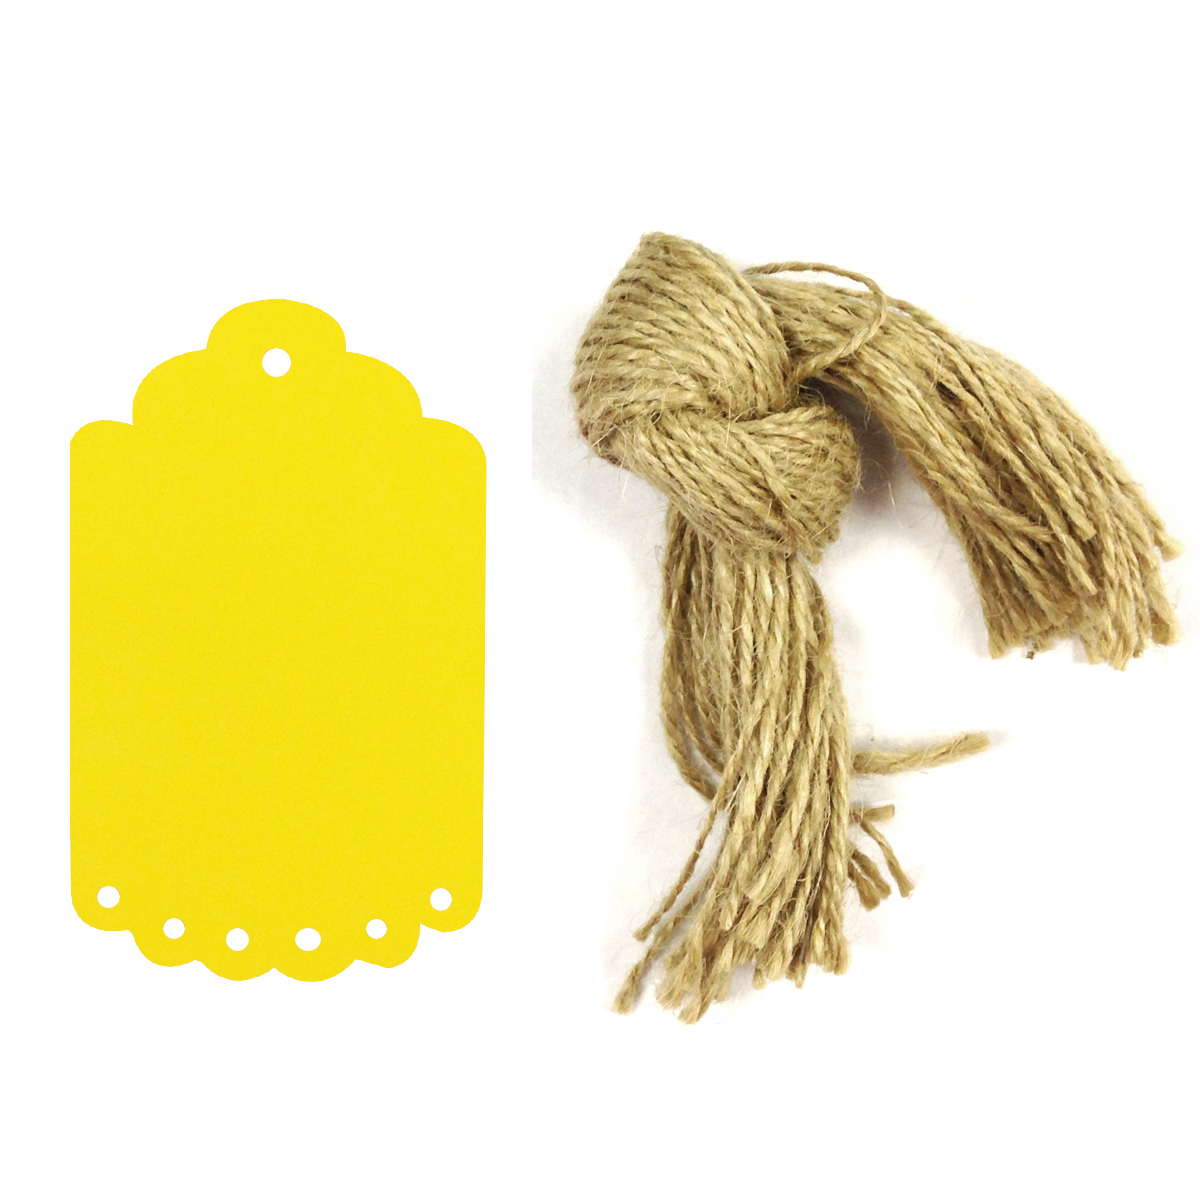 Wrapables® 50 Gift Tags/Kraft Hang Tags with Free Cut Strings for Gifts, Crafts & Price Tags, Small Scalloped Edge (Yellow)